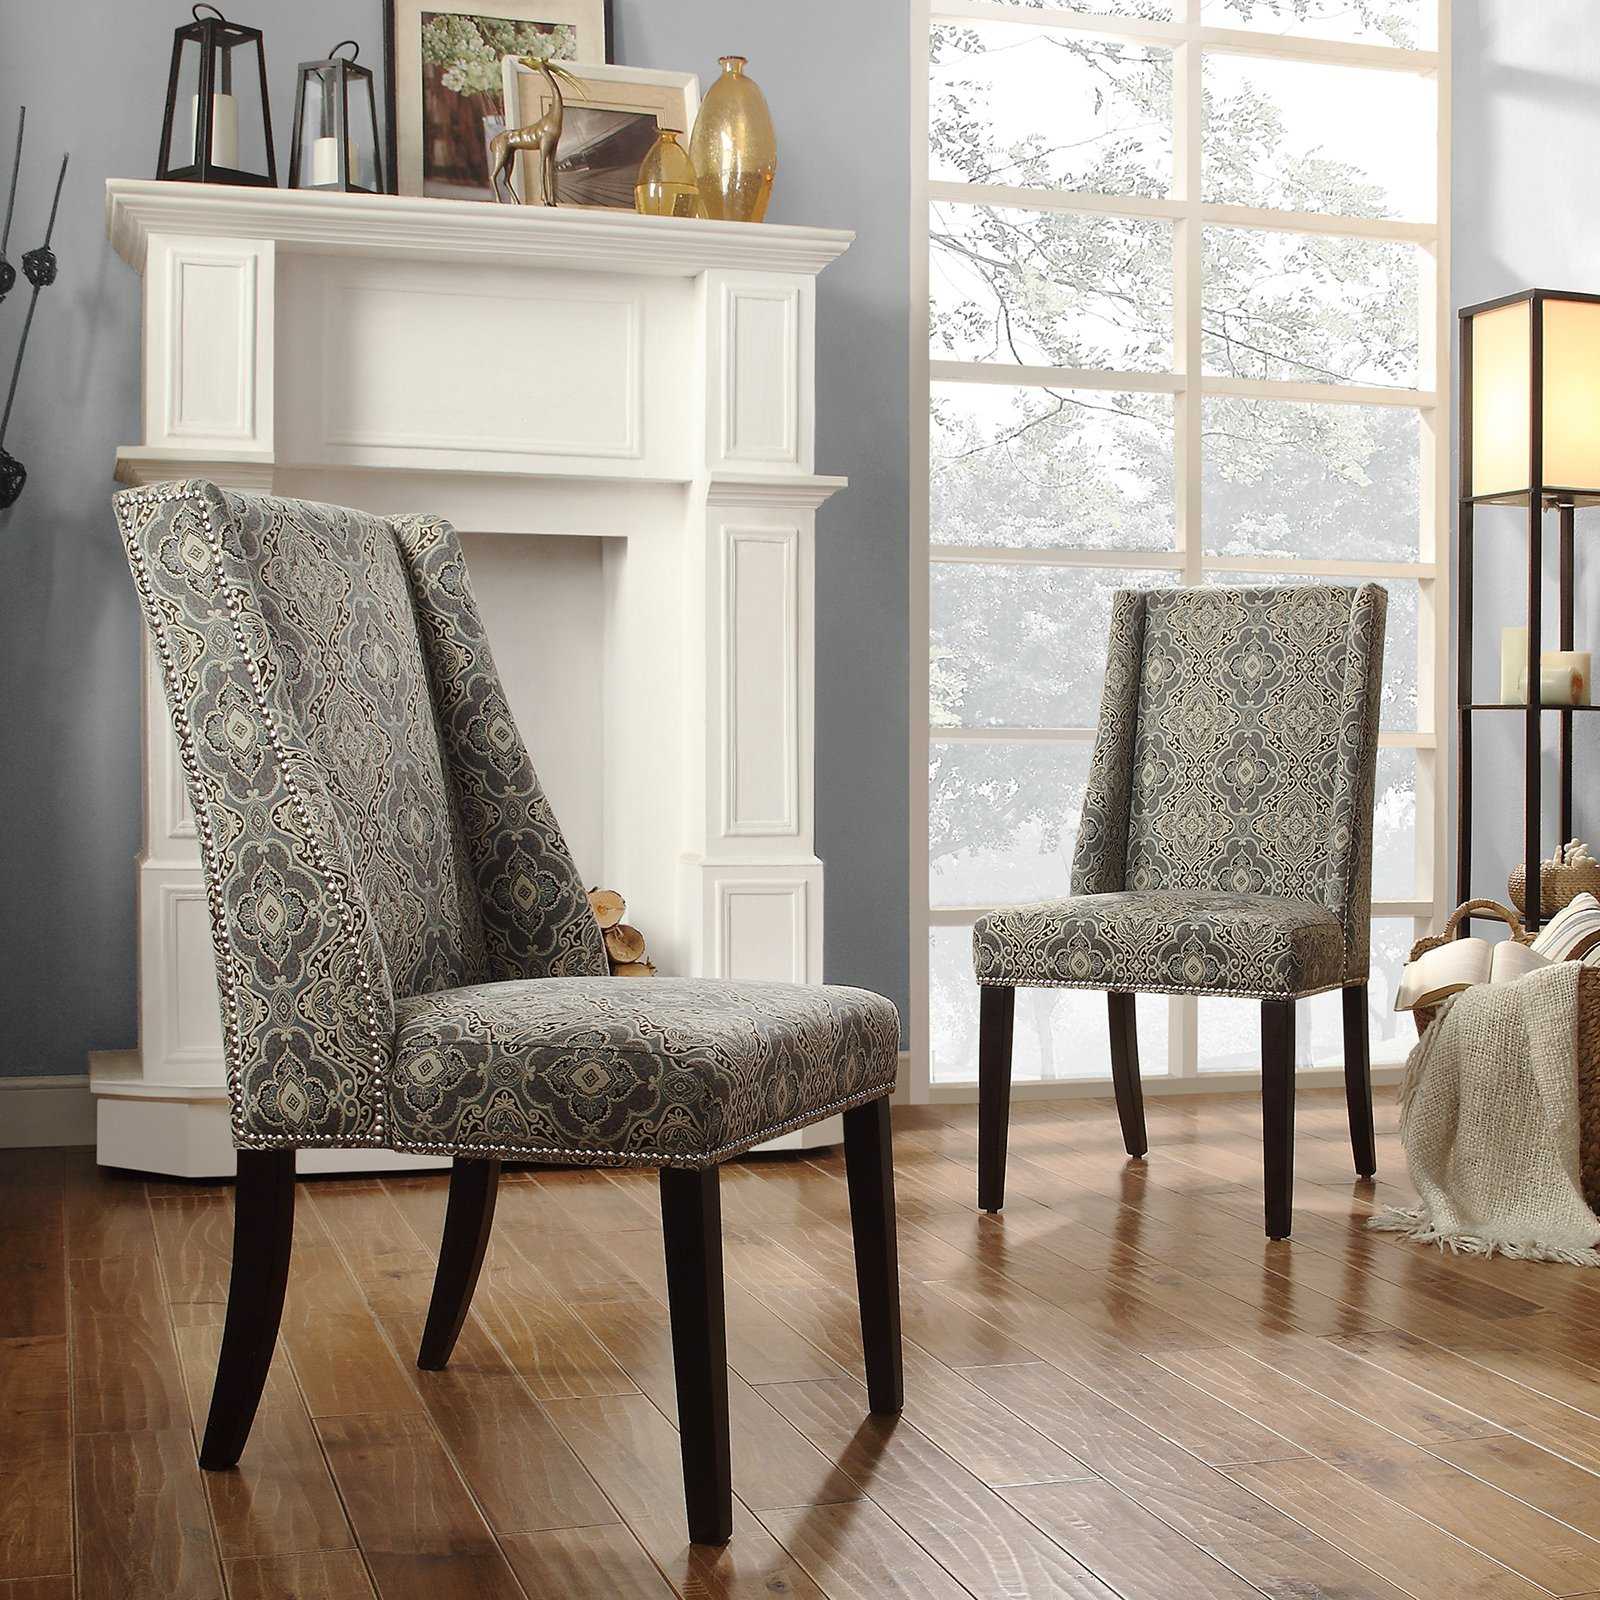 Chelsea Lane Blue Print Fabric Wingback With Nailhead Accent Chair   Set Of  2